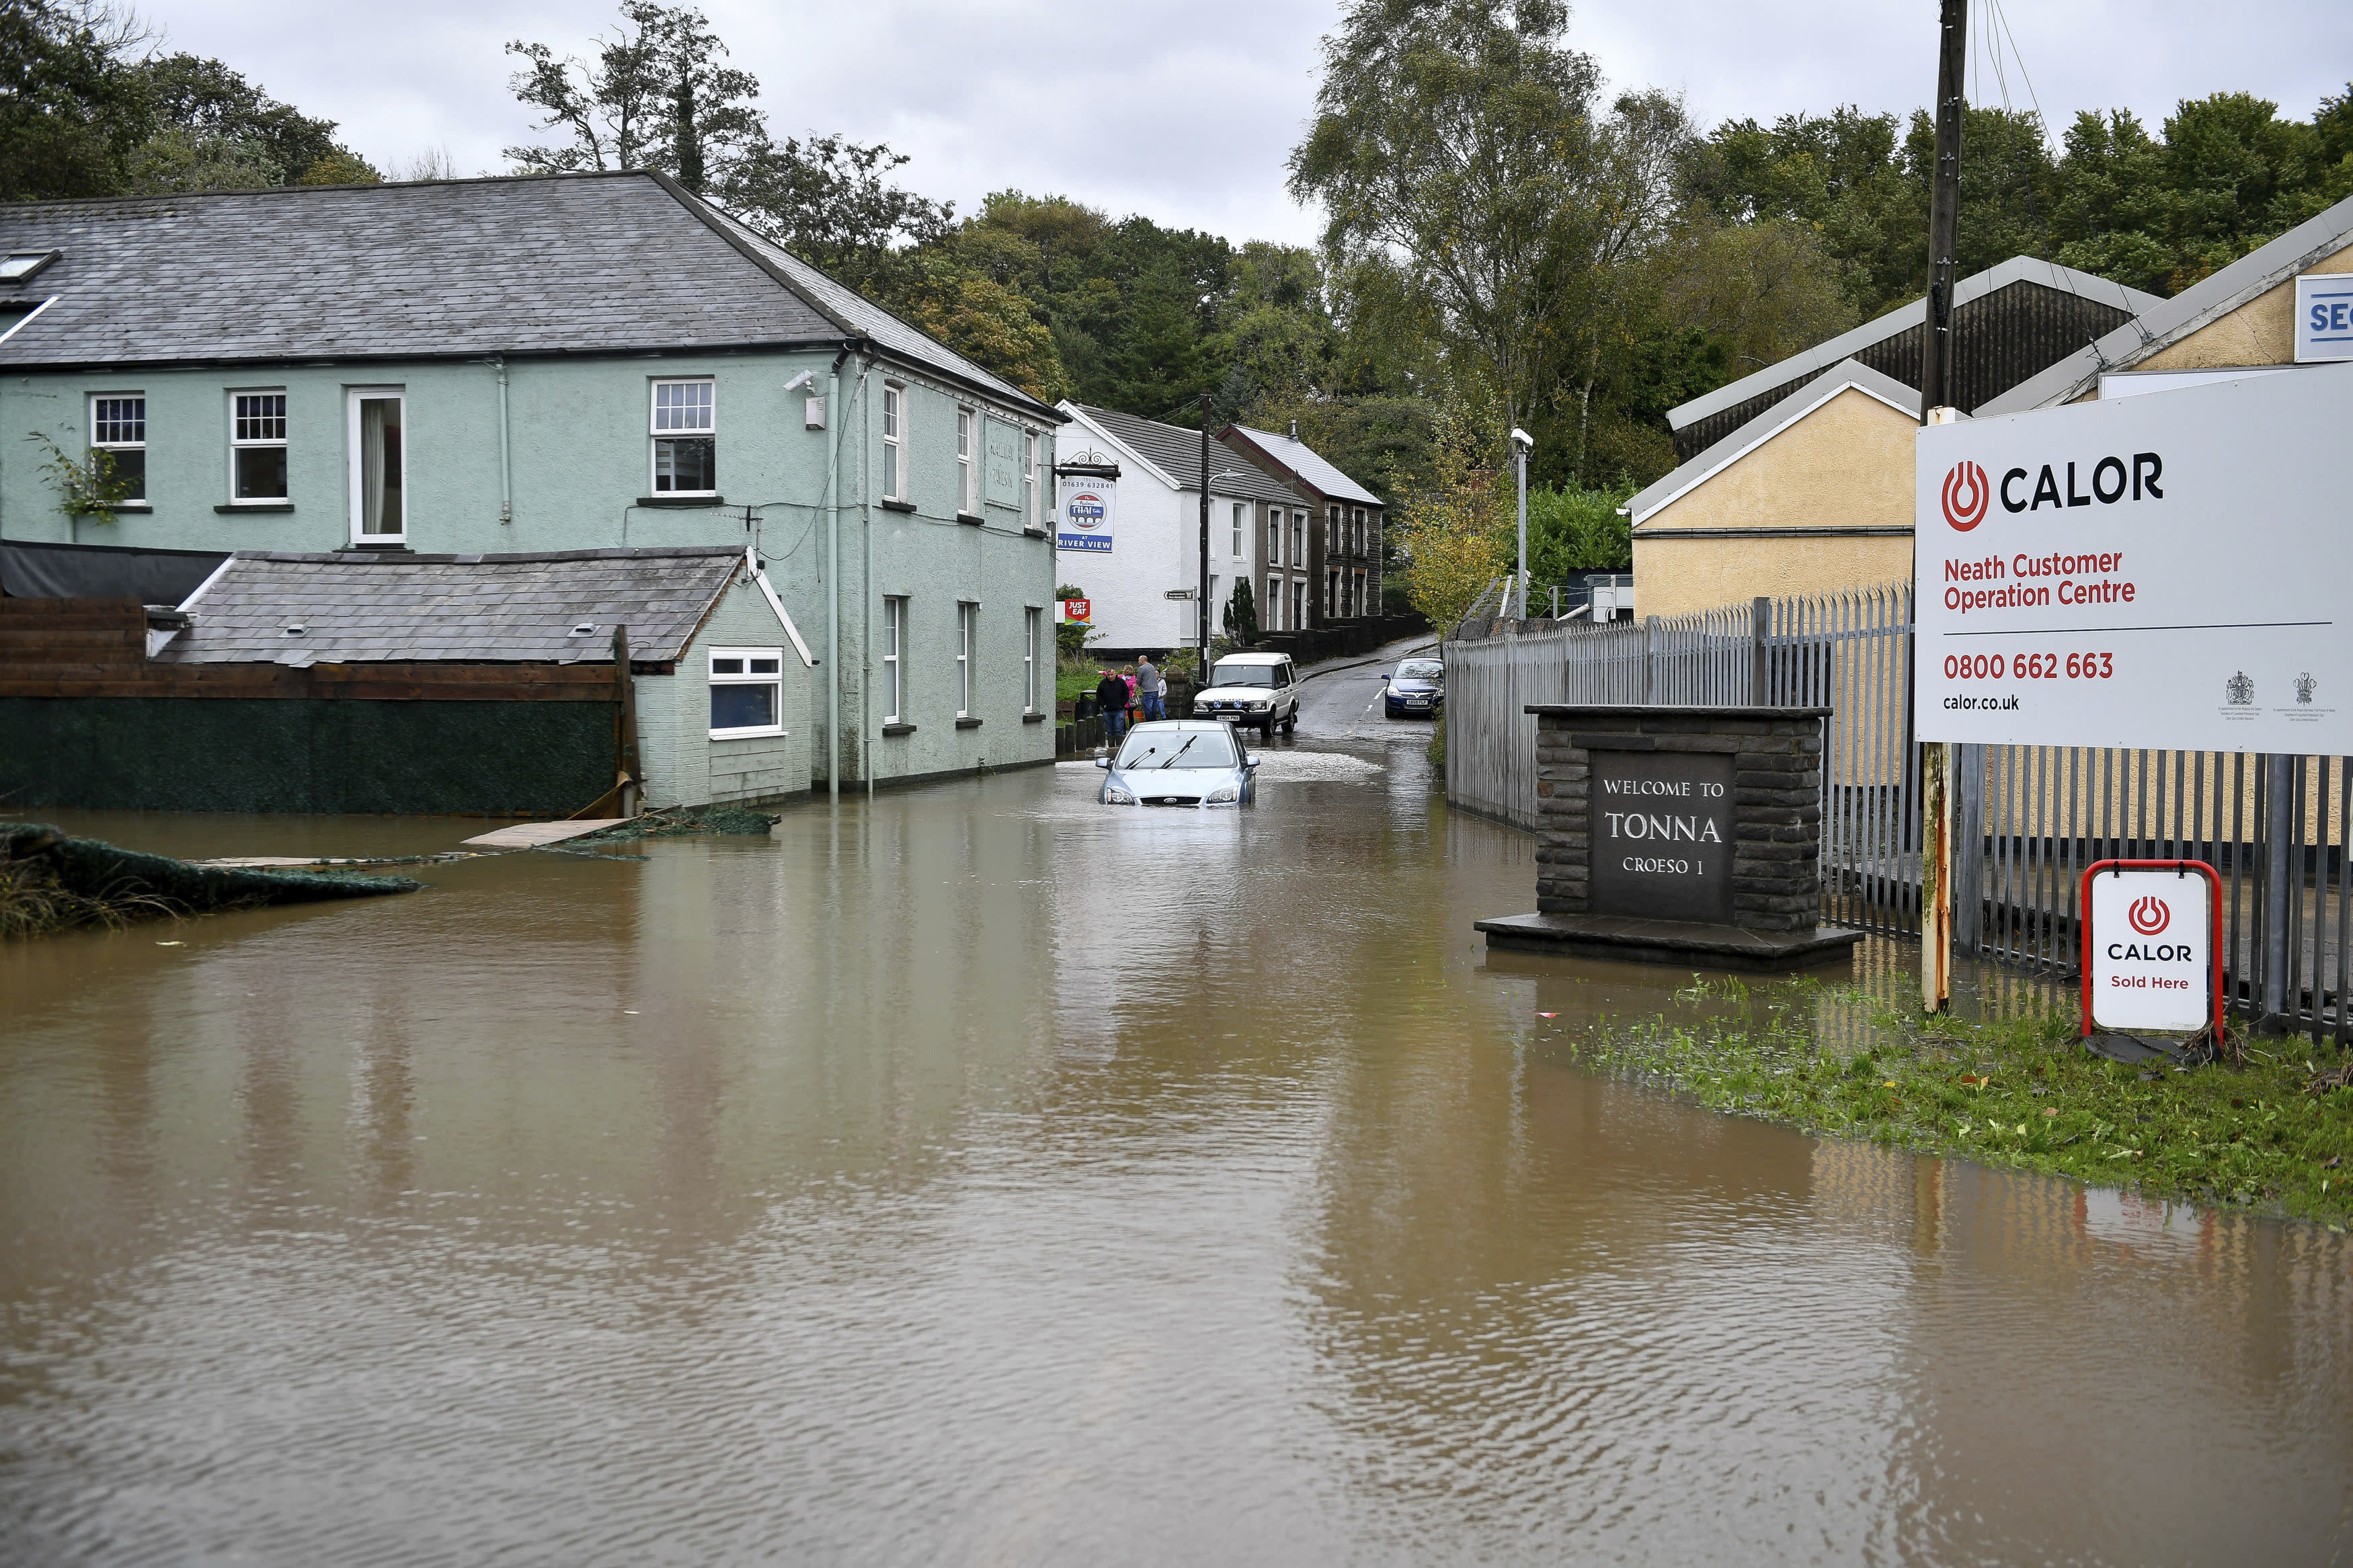 A car is stranded in floodwater where an amber weather warning is in force across the region, in Tonna near Aberdulais, Neath, in South Wales, Saturday, Oct. 13.2018. (Ben Birchall/PA via AP)